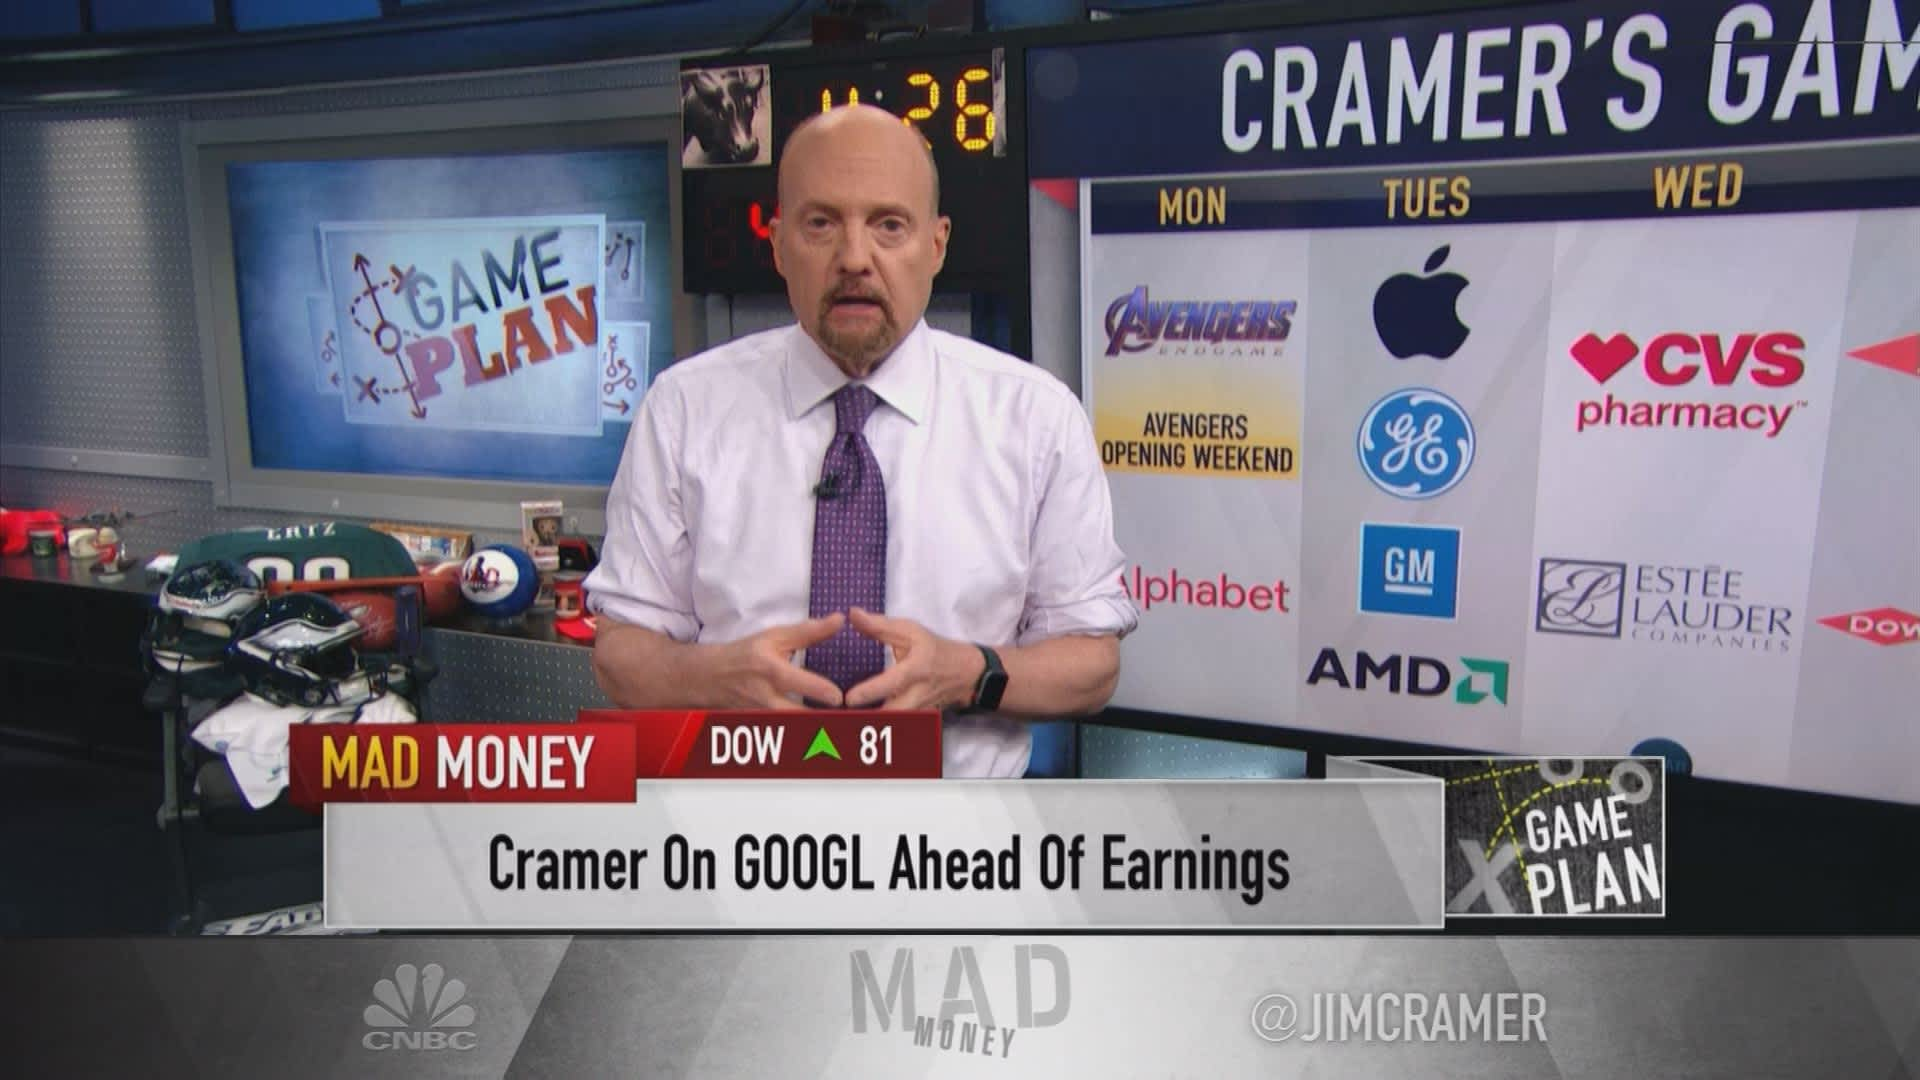 Cramer's game plan: What to expect in the week of earnings and Friday's jobs report